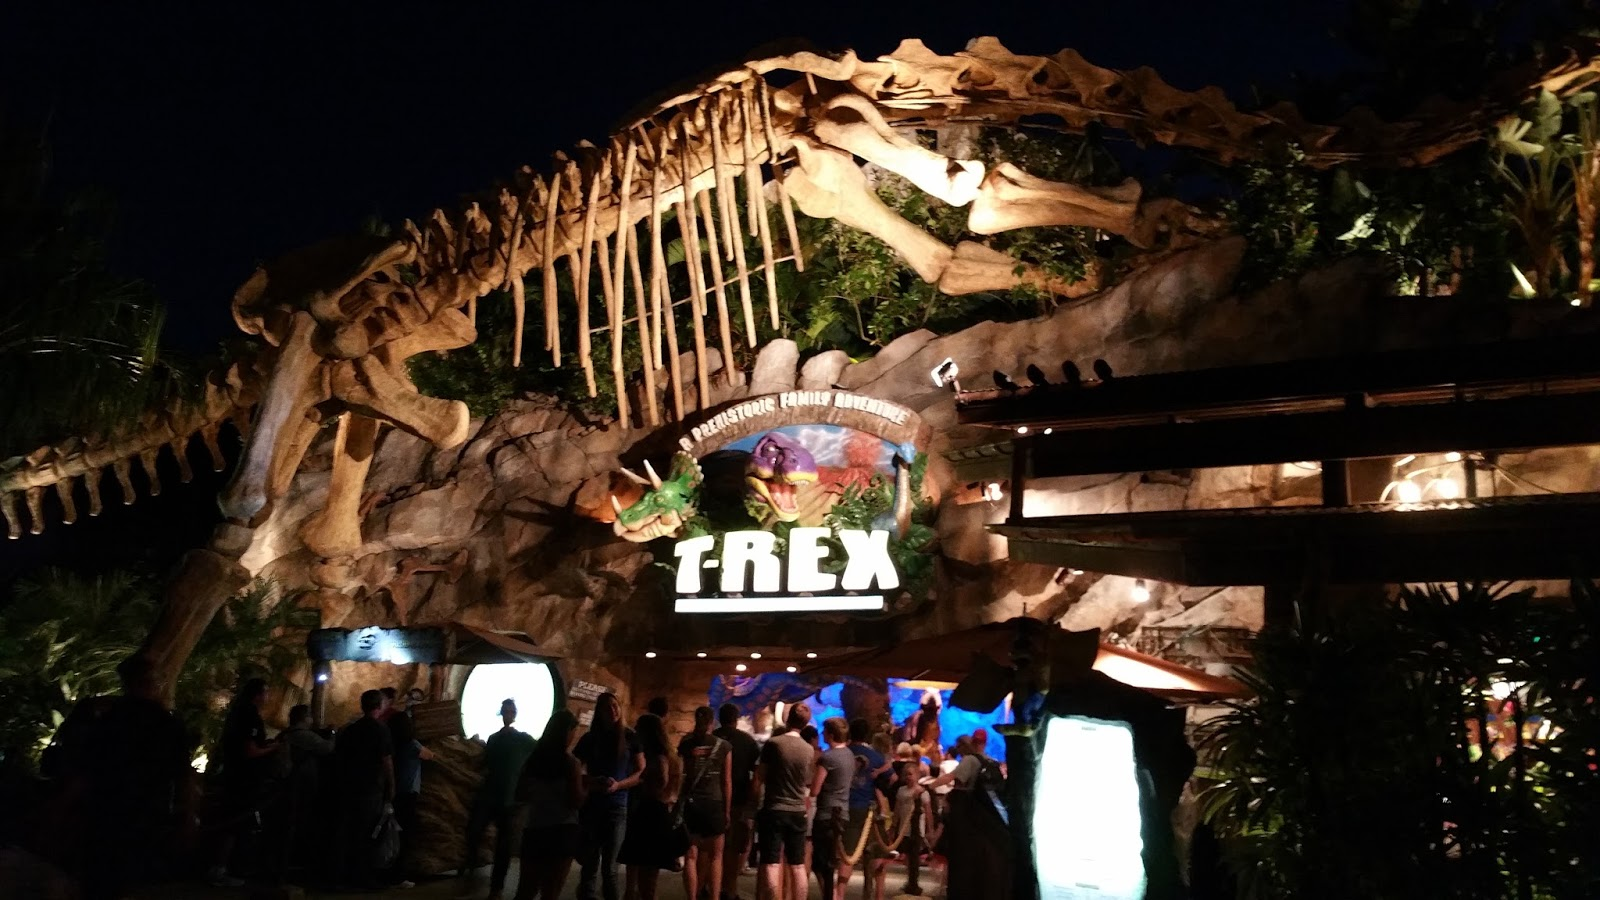 Travel time t rex at disney springs at walt disney world for Disney dining reservations t rex